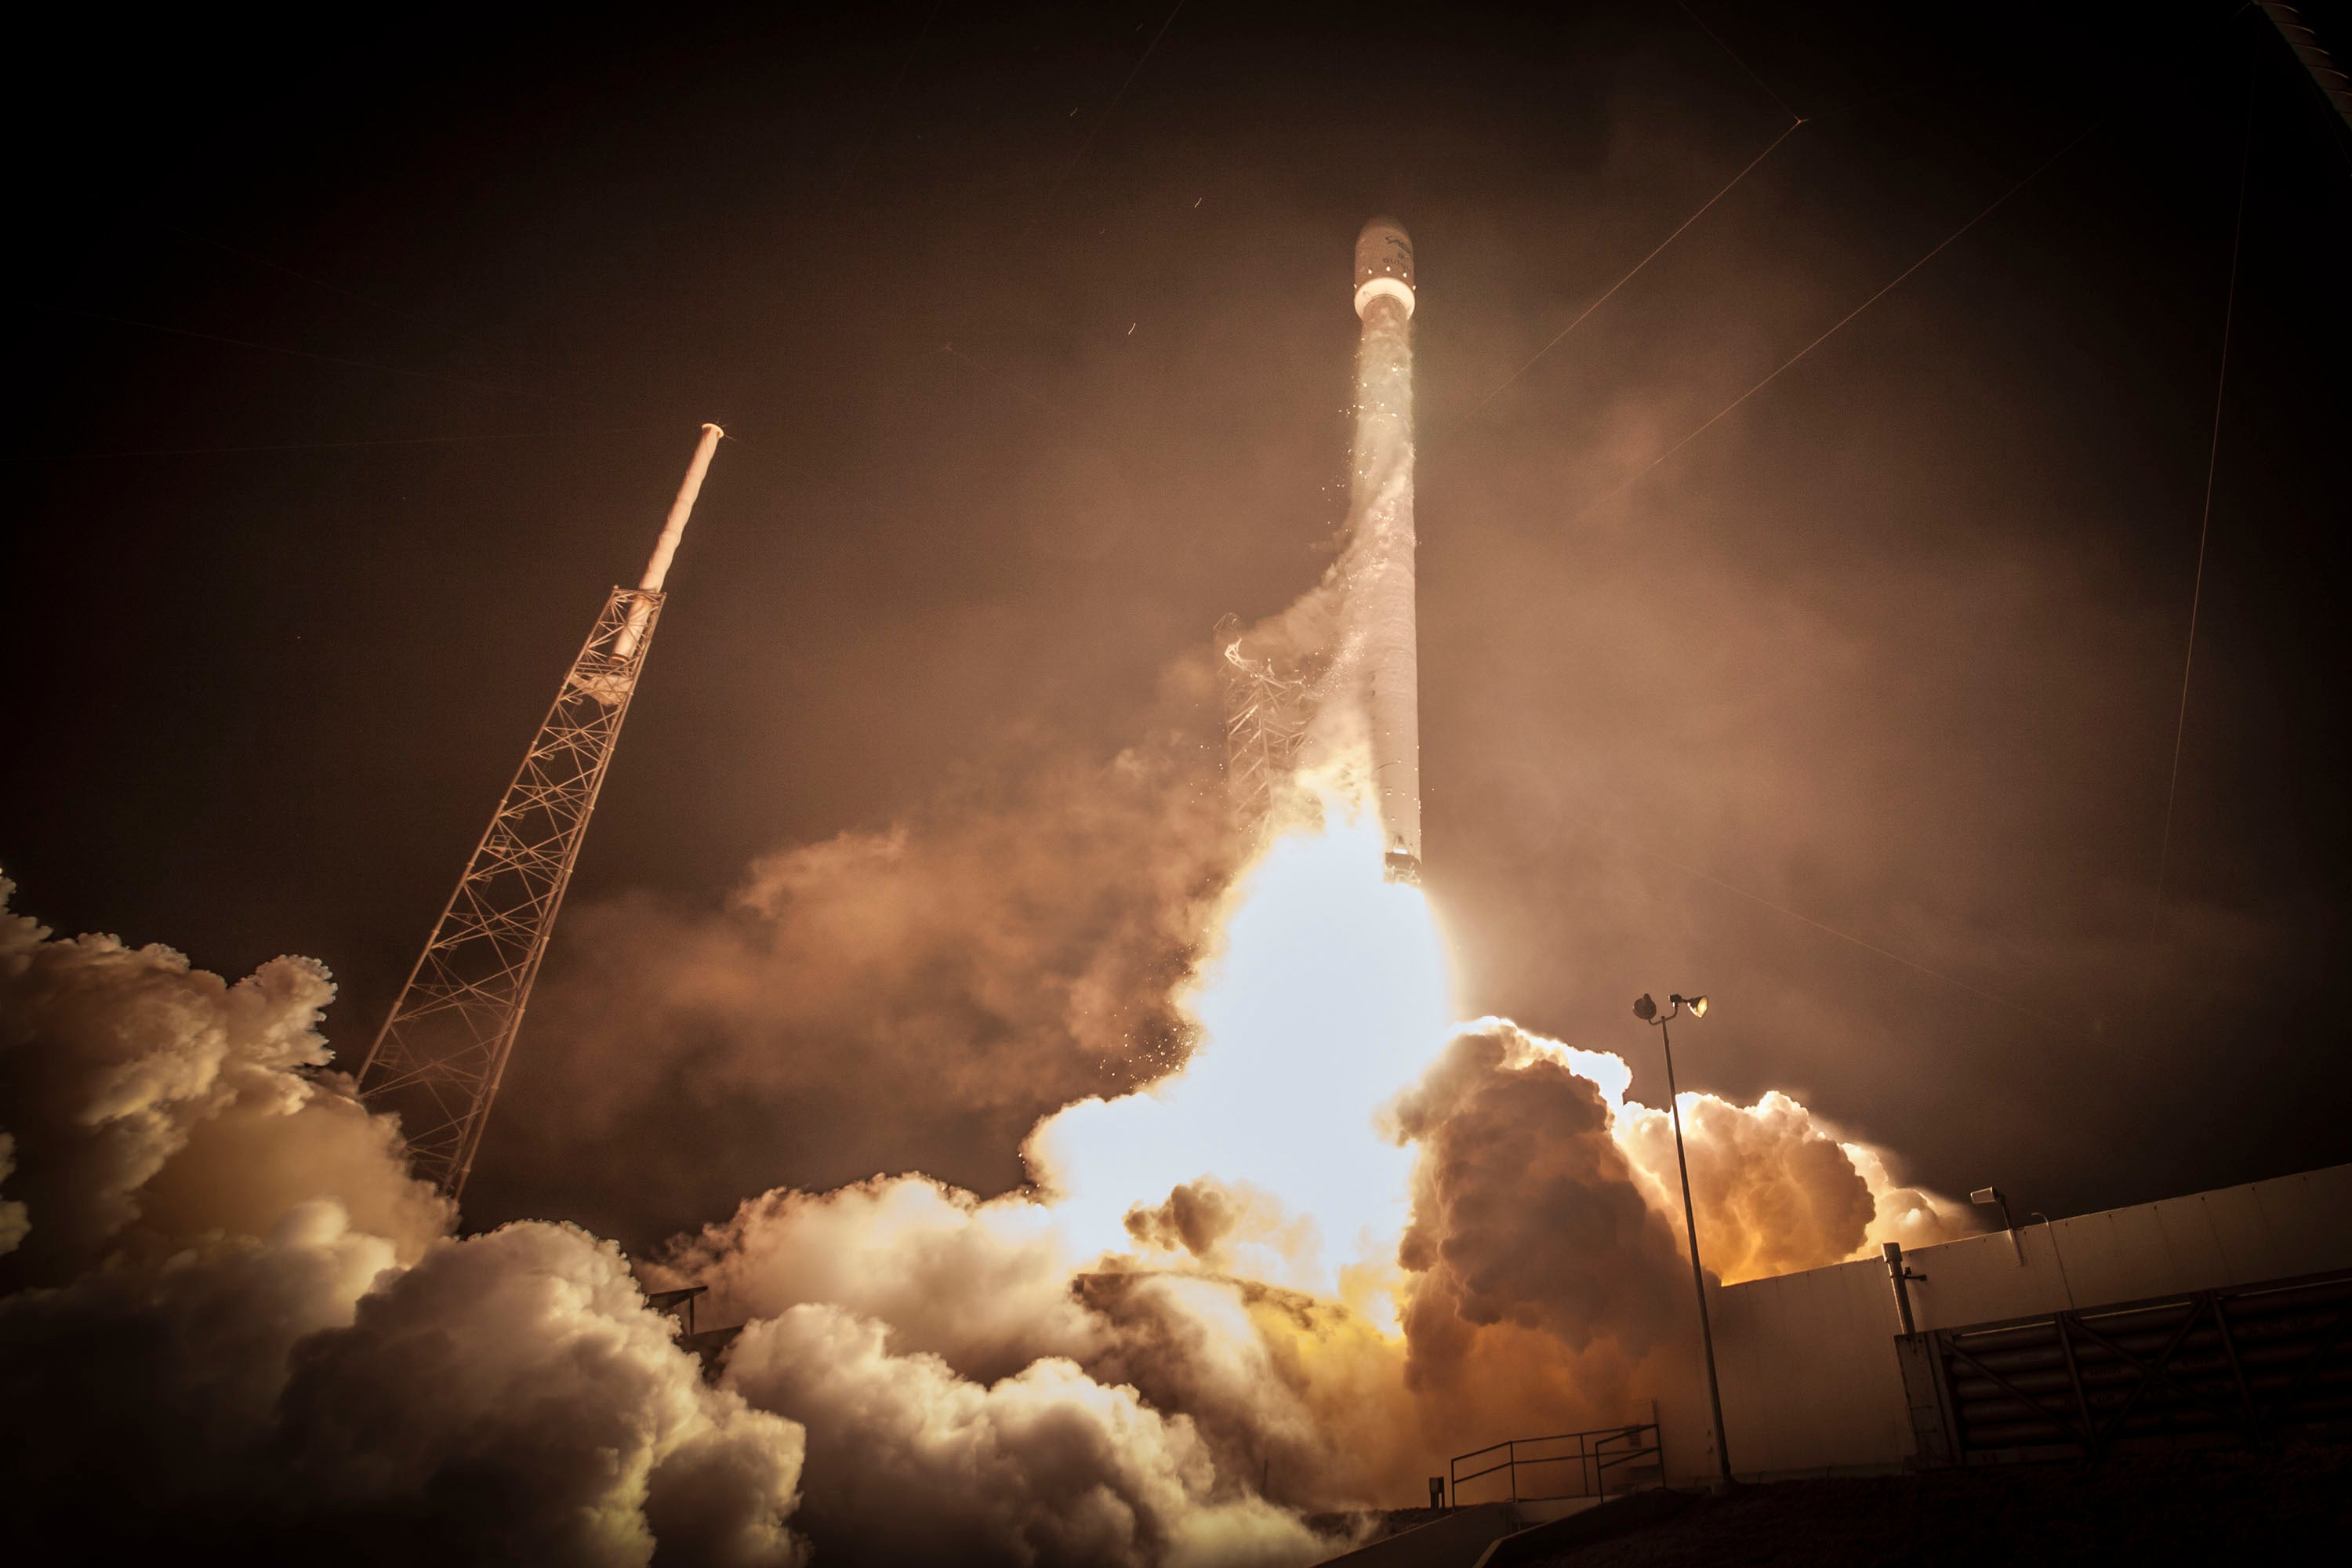 Watch Falcon 9 Rocket (Which Even SpaceX Thinks Will Crash) Launch Live